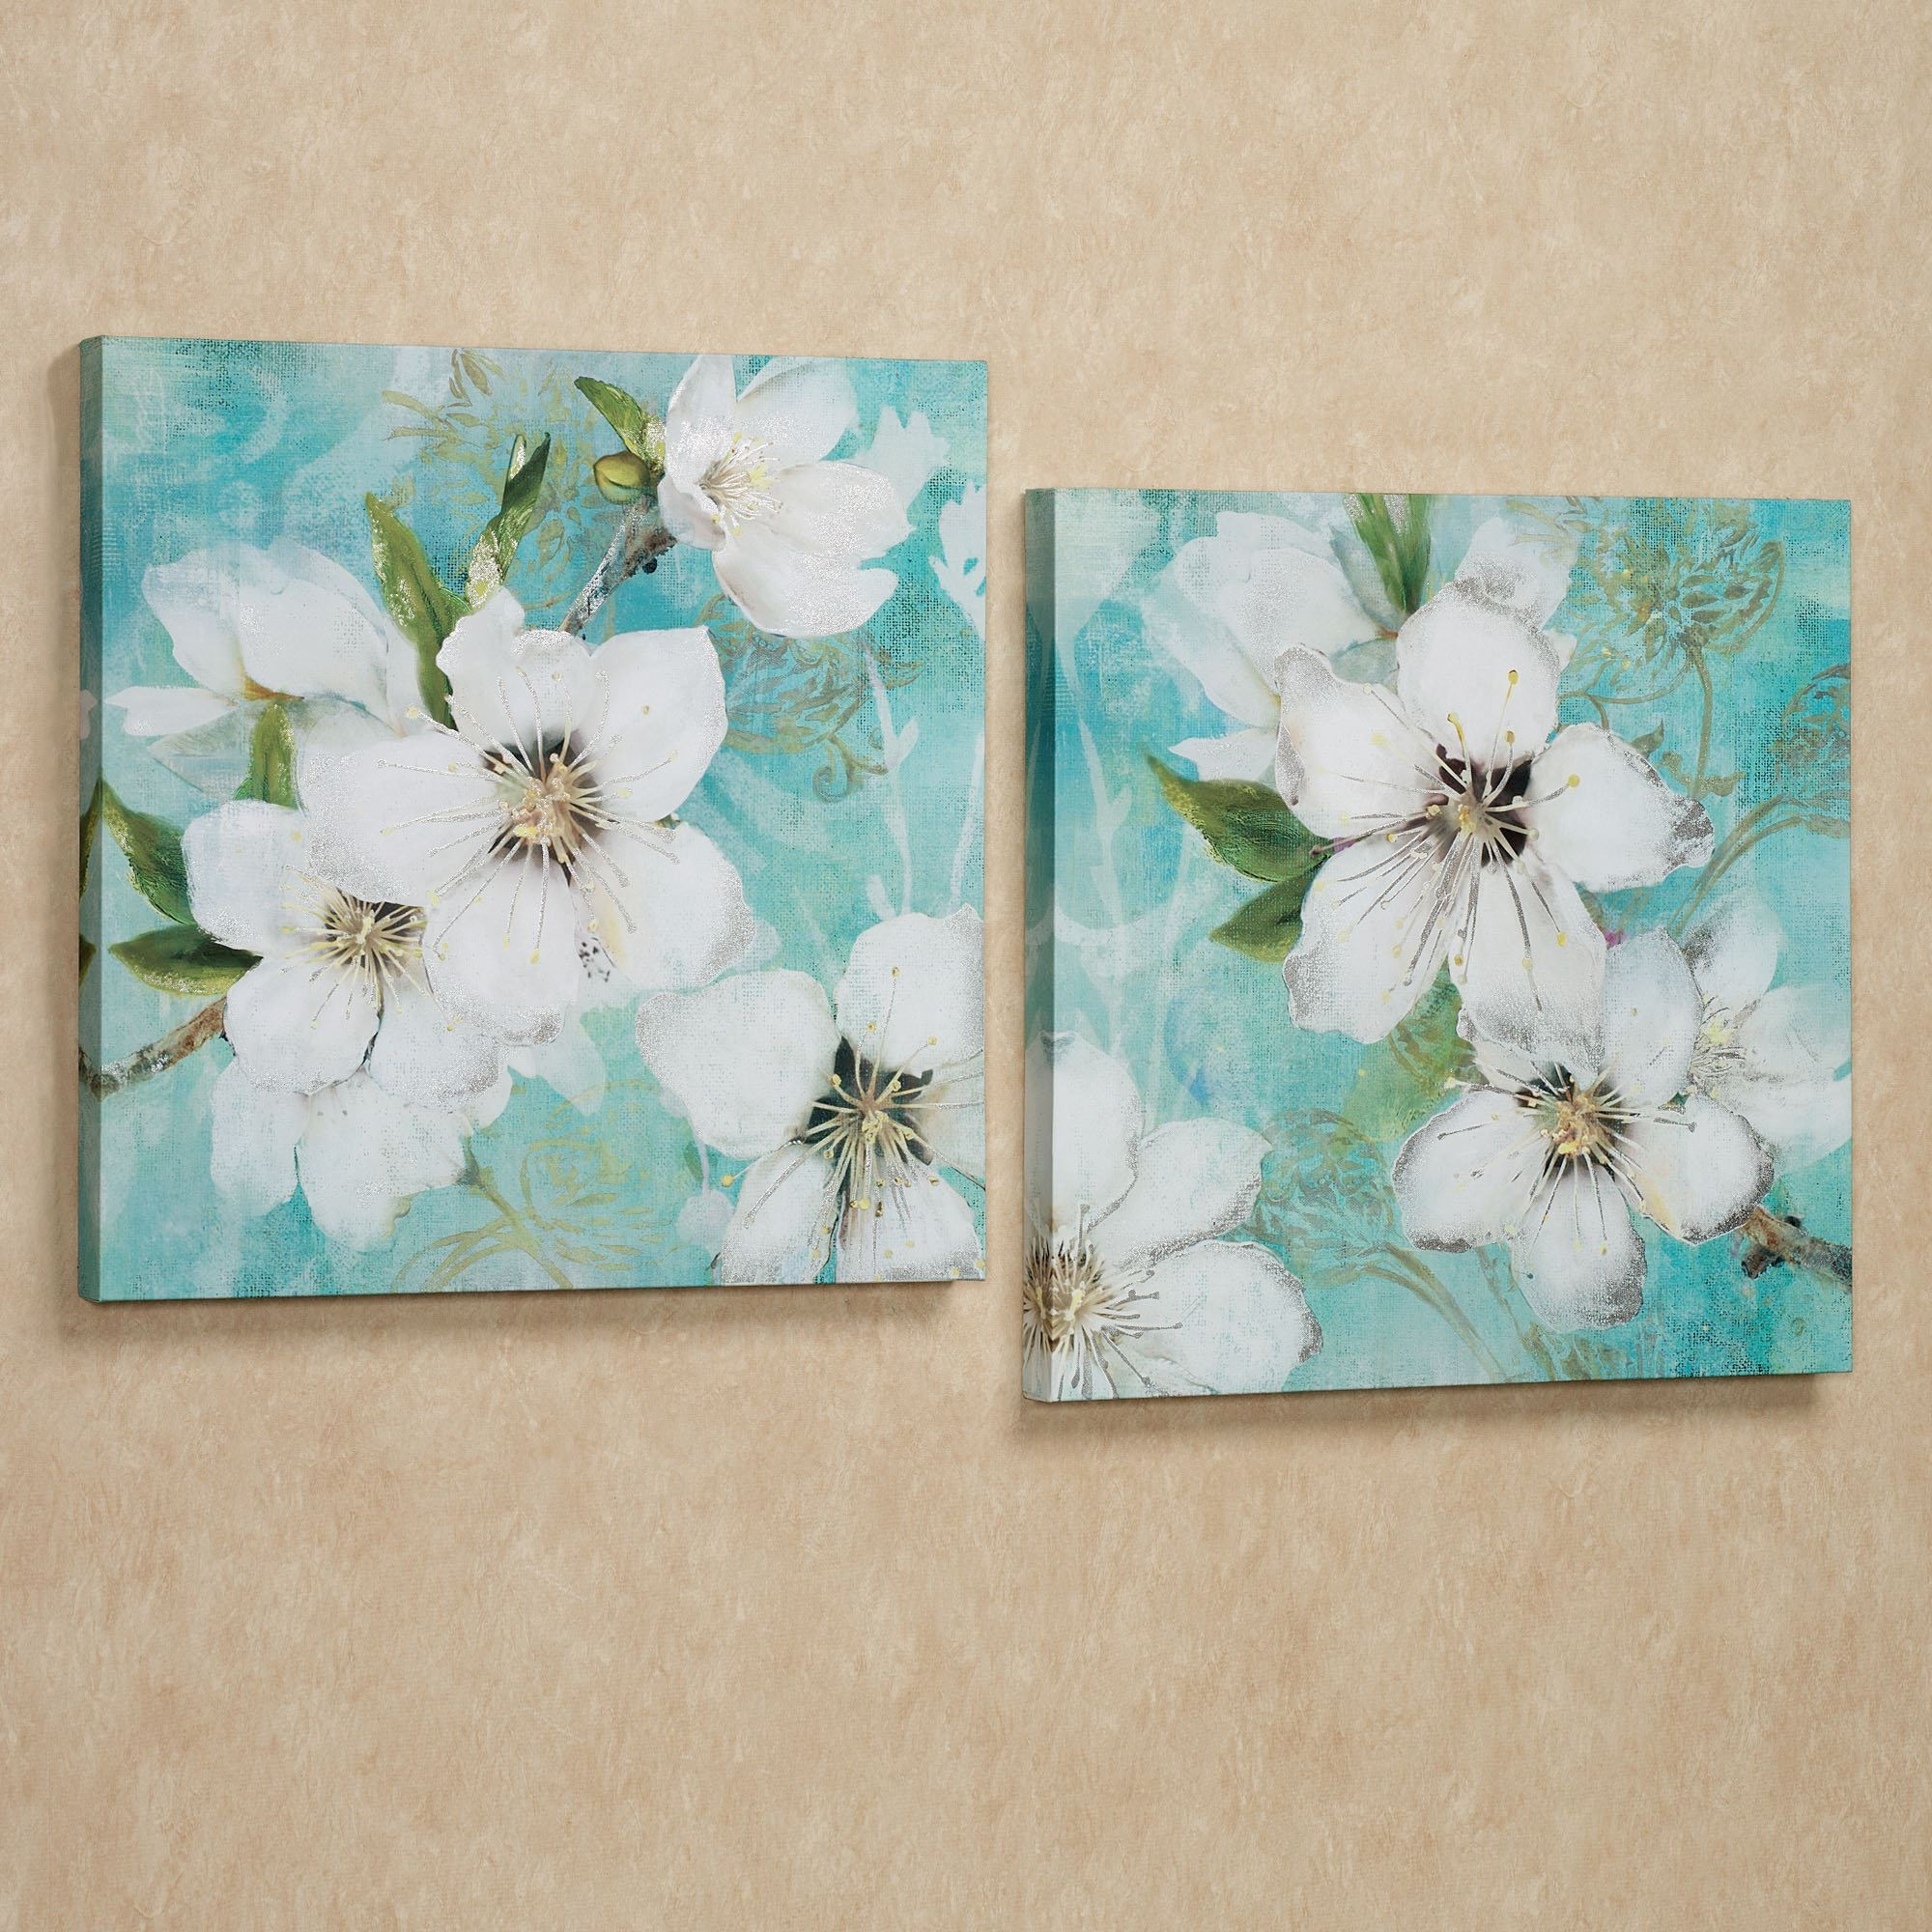 Flowers in bloom giclee canvas wall art set for Flower paintings on canvas